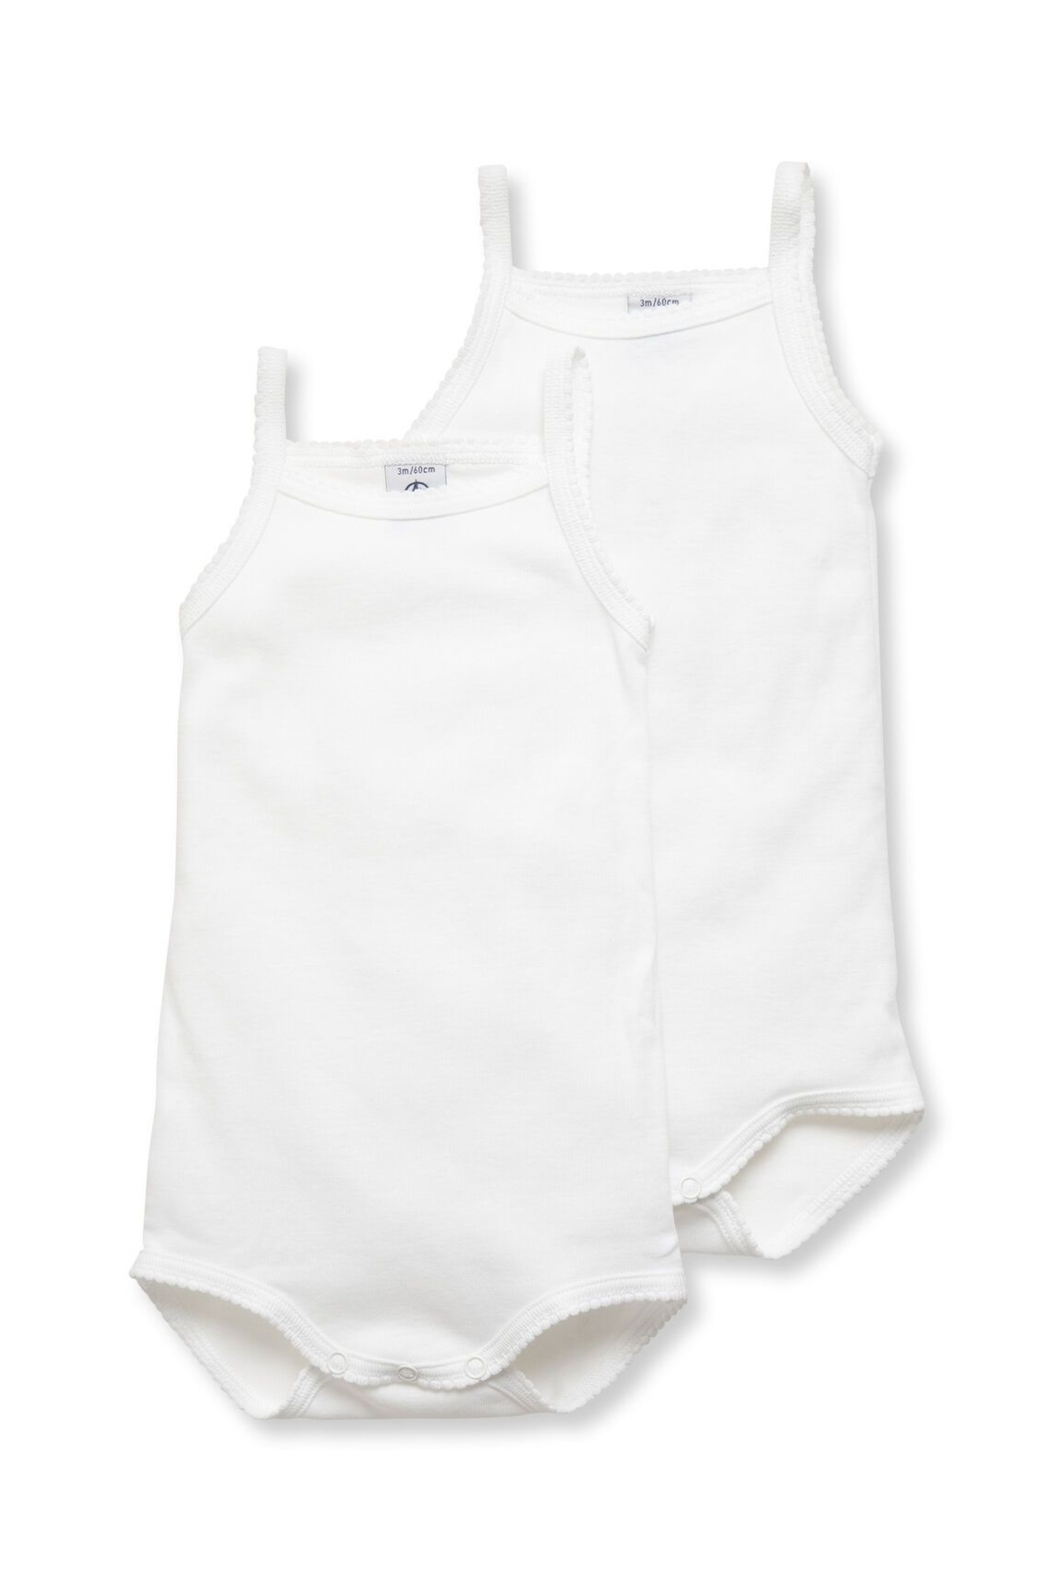 Petit Bateau Shop  Baby Girl Bodysuit With Straps at Little Loungers for a special discount - Main Image